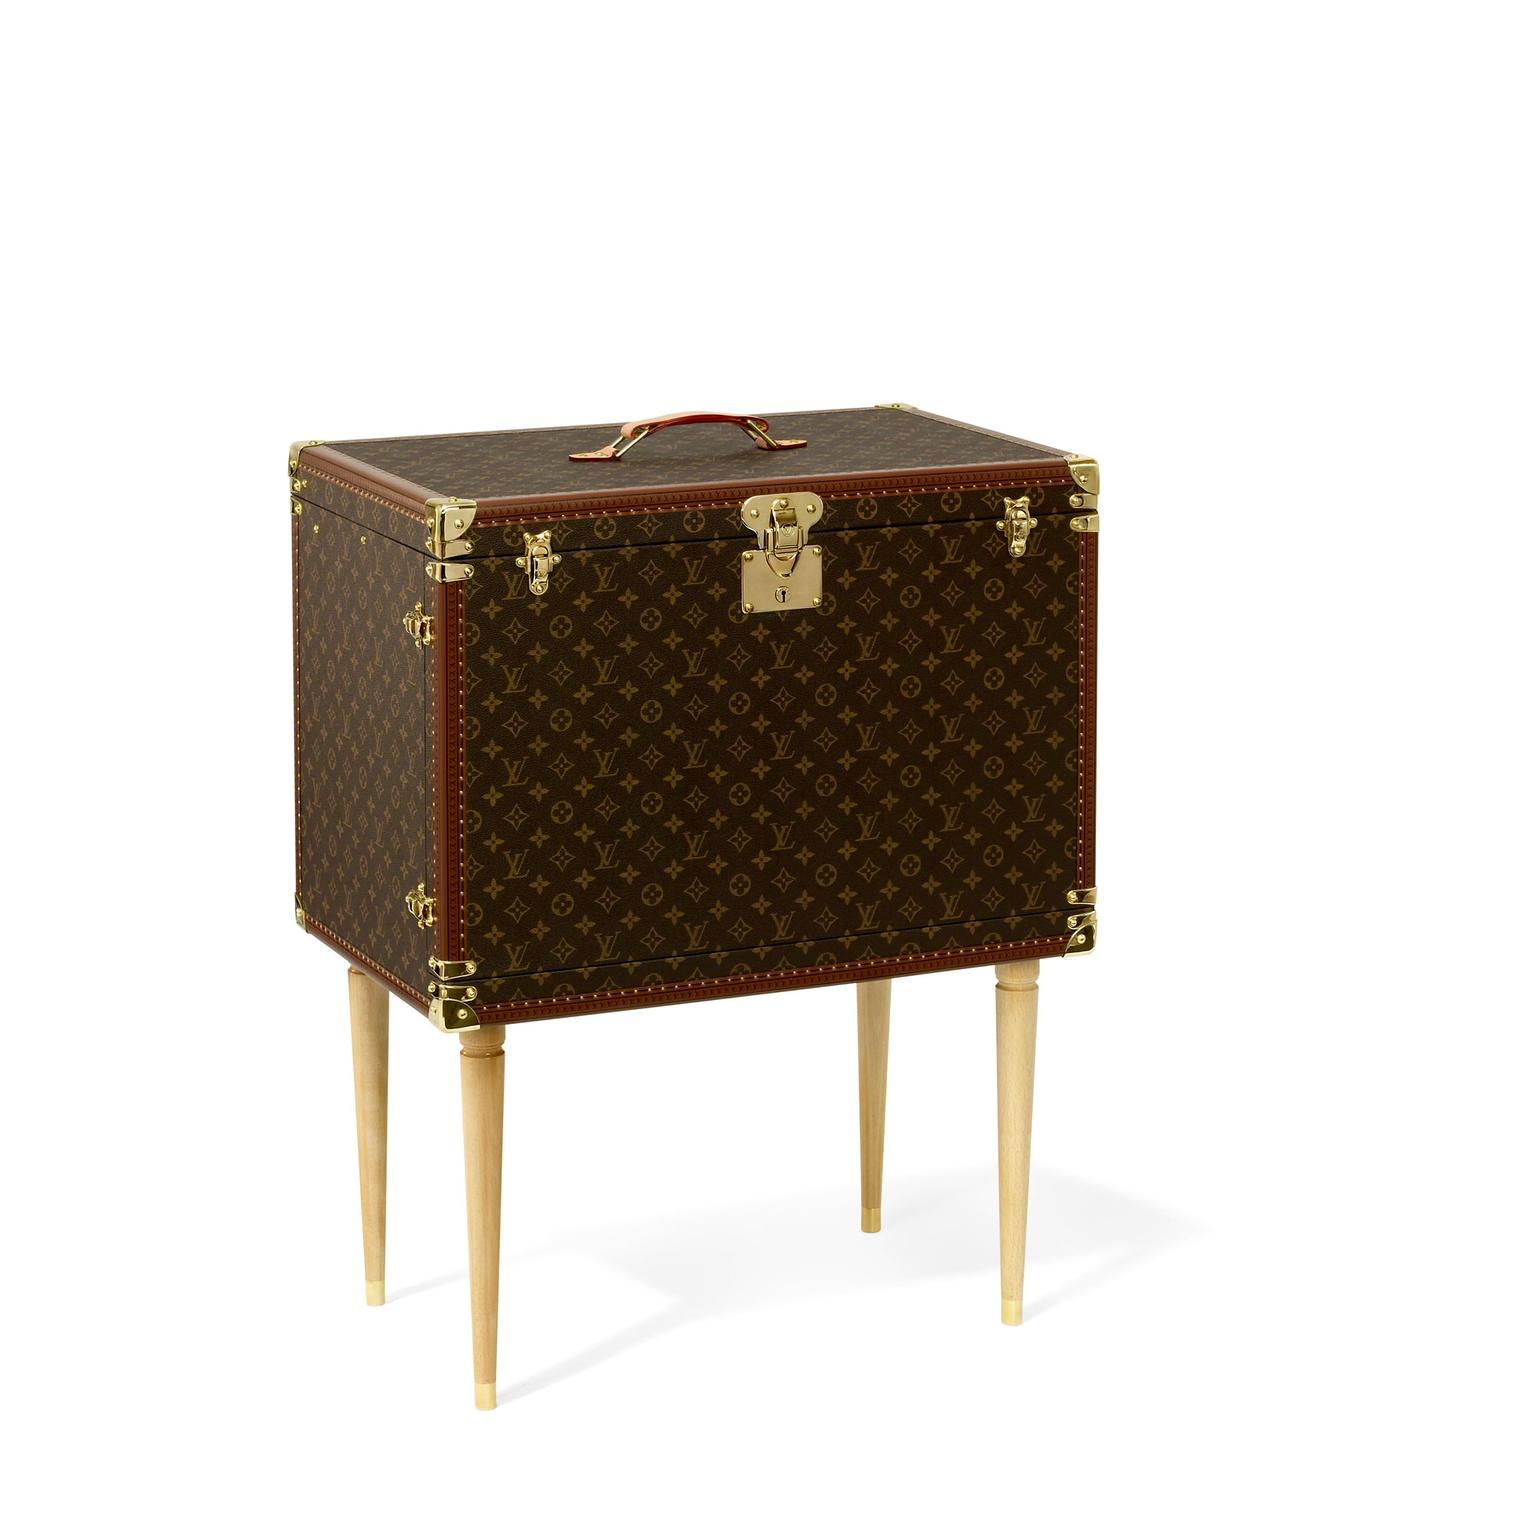 Louis Vuitton Kabuki makeup trunk in brown